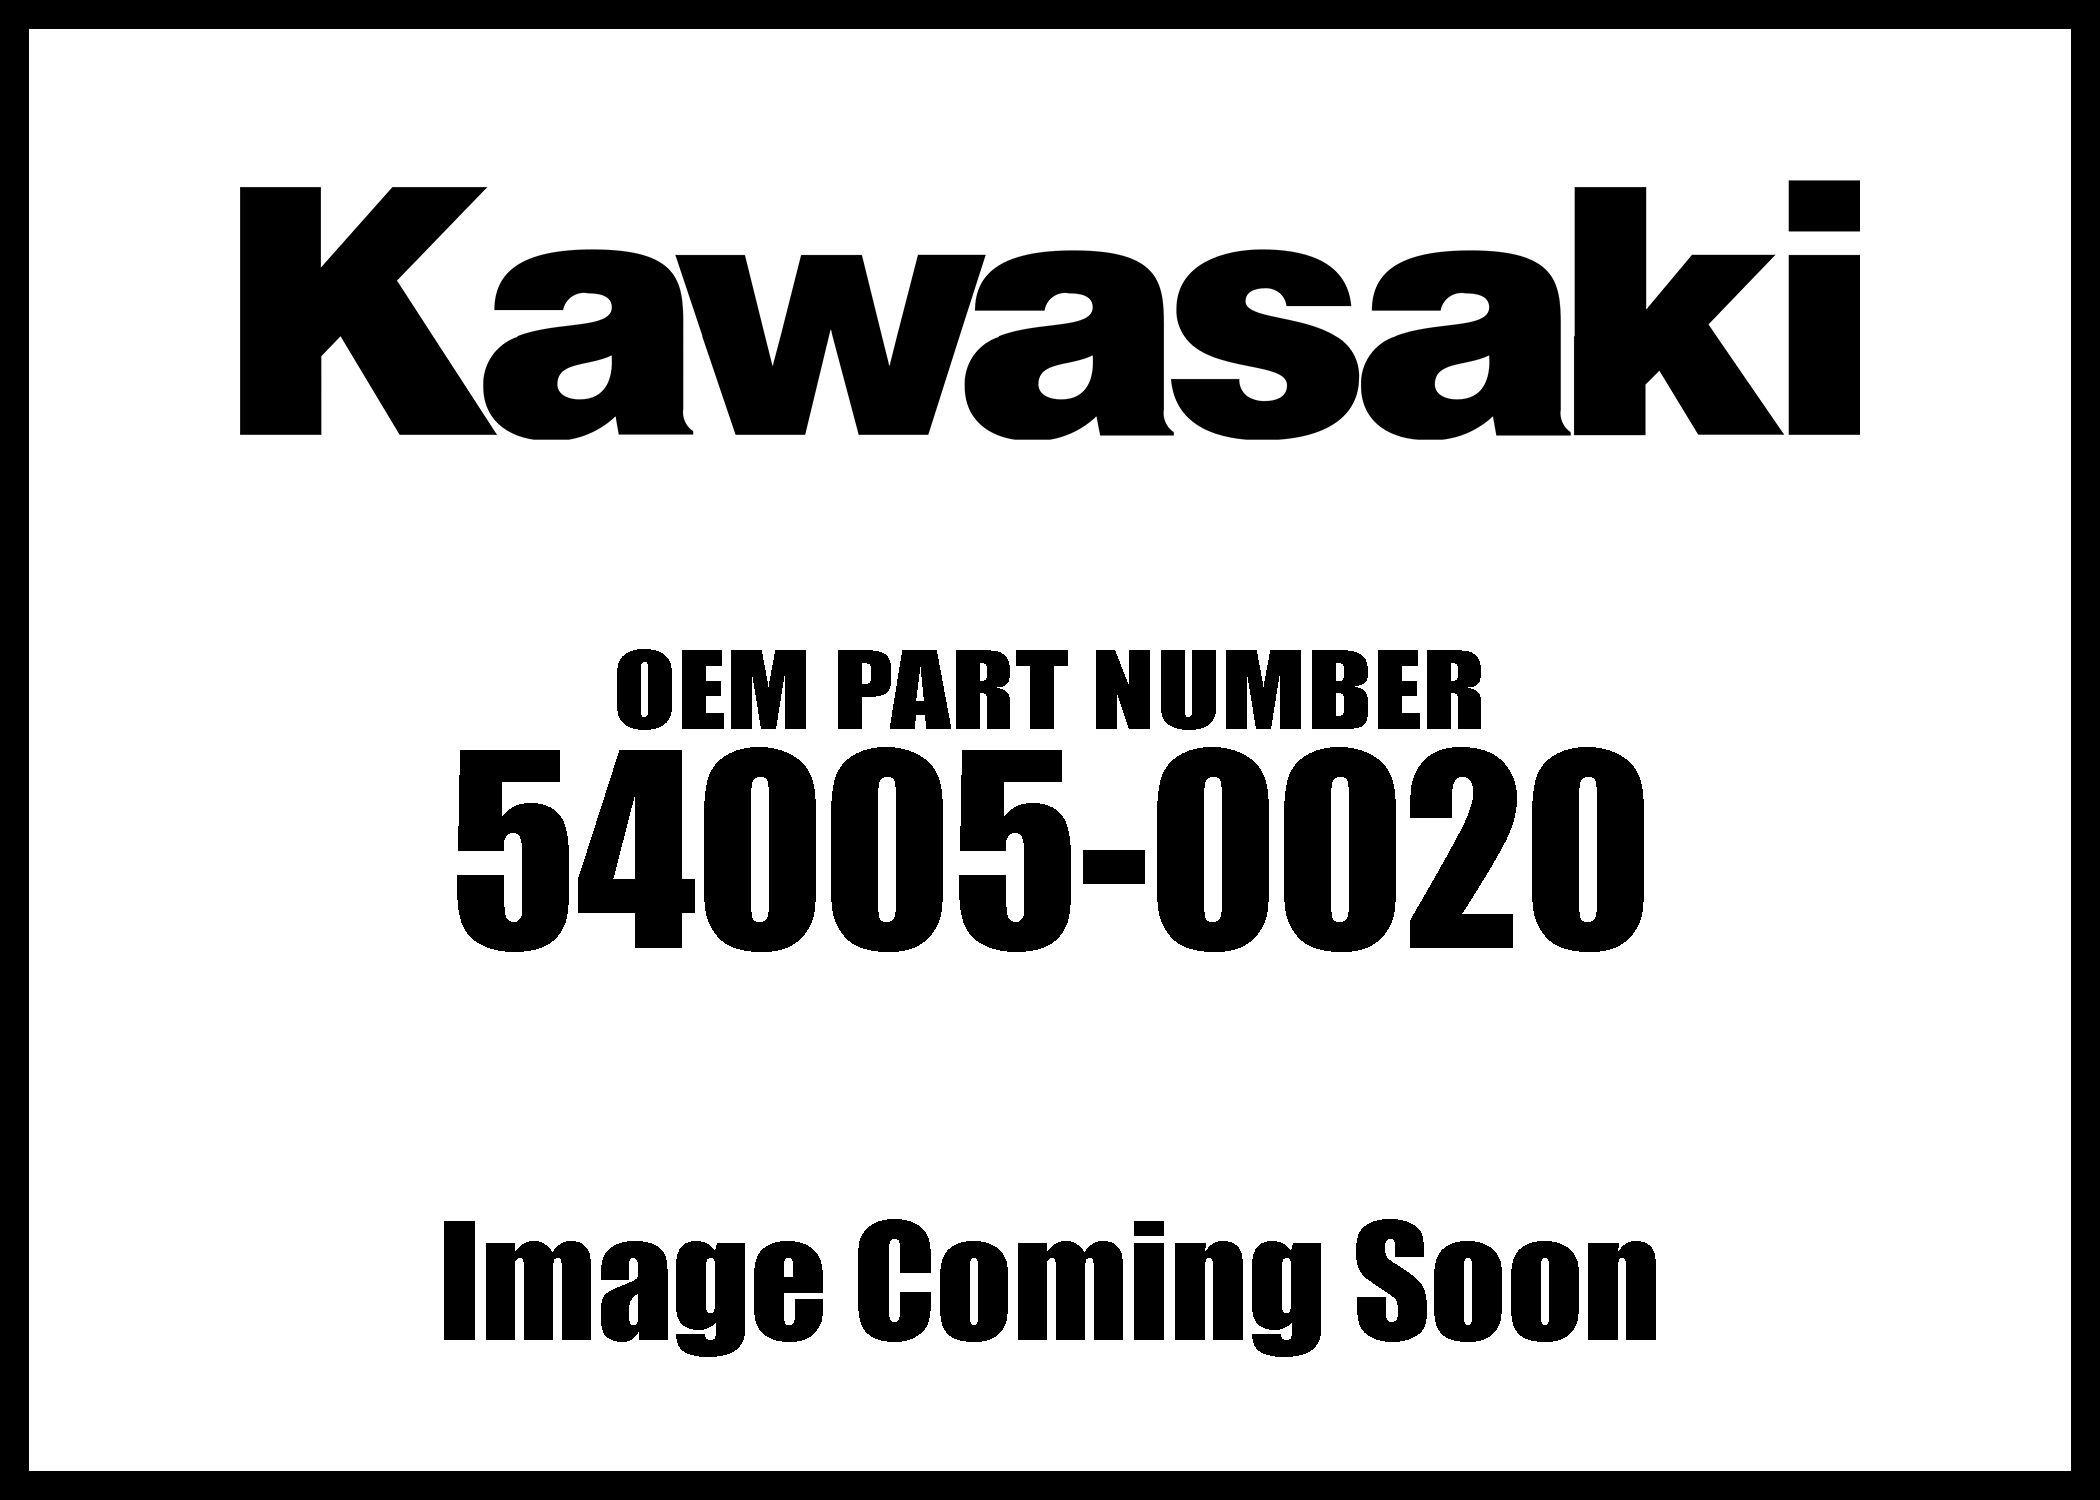 Kawasaki 54005-0020 08 Brute Force 650 4x4 Parking Brake Cable KVF650 QTY 1